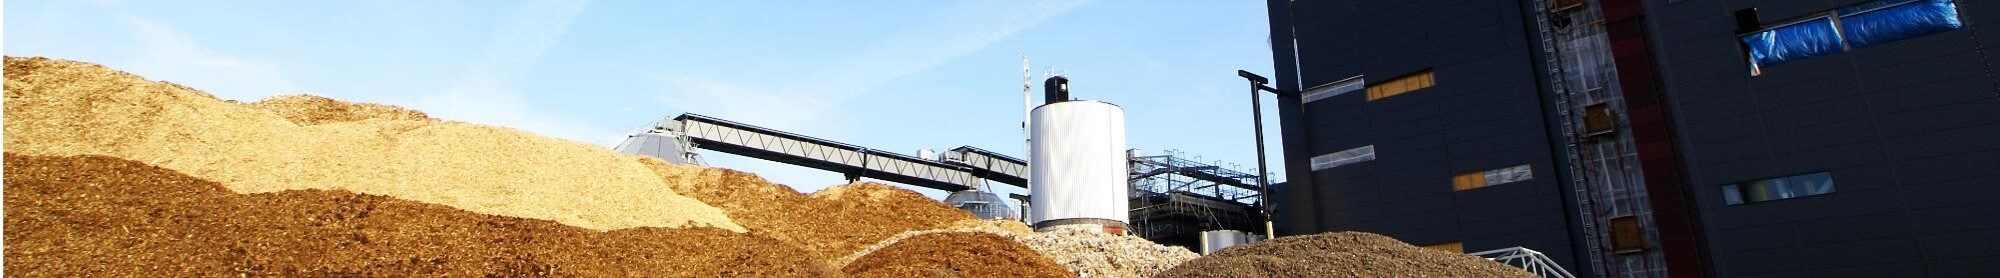 The 4 key factors for biomass CHP success